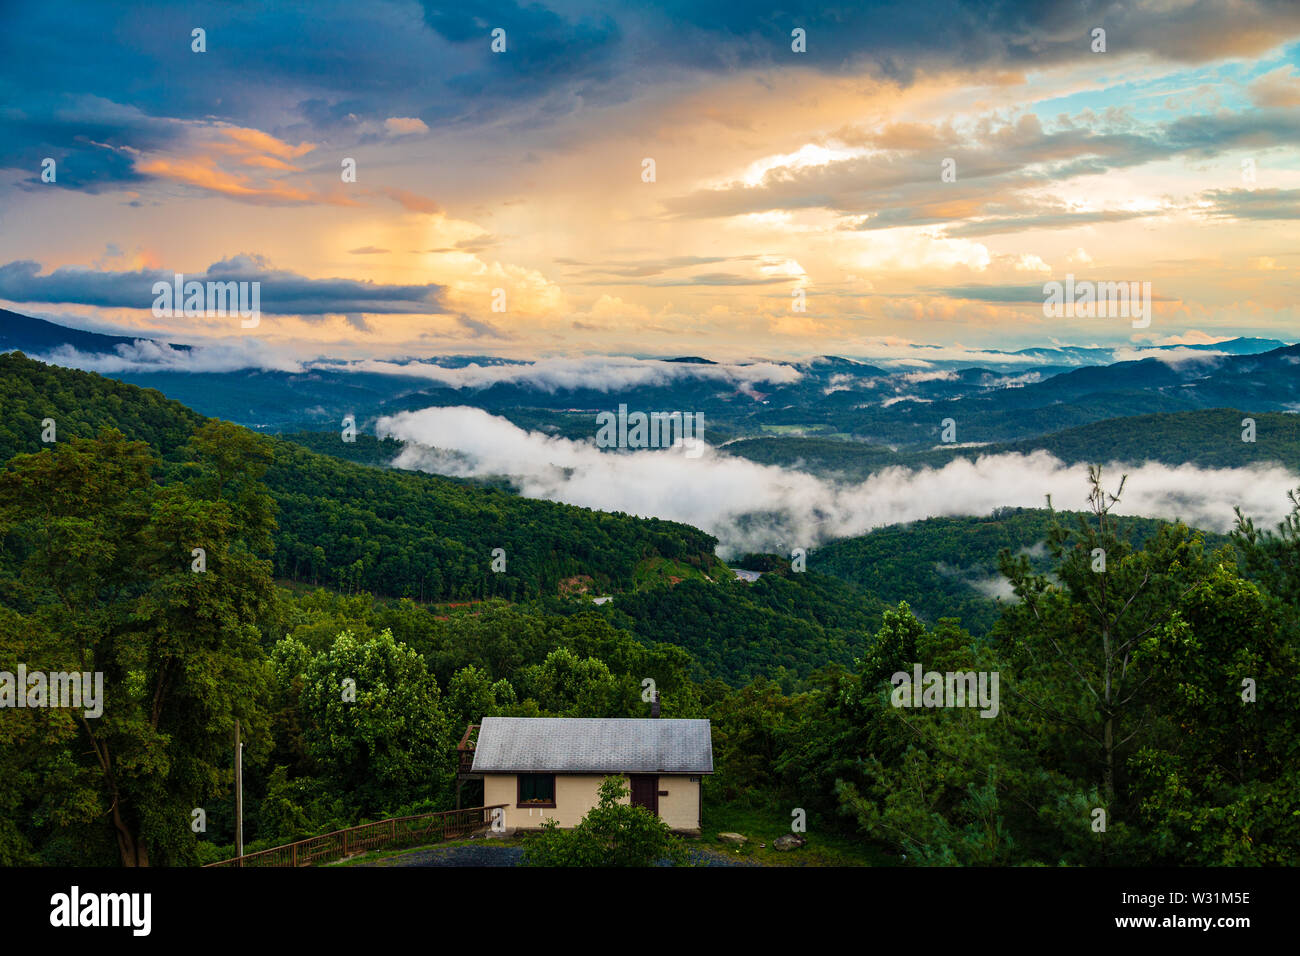 The view south from Gillespie Gap near Spruce Pine, North Carolina, USA. - Stock Image